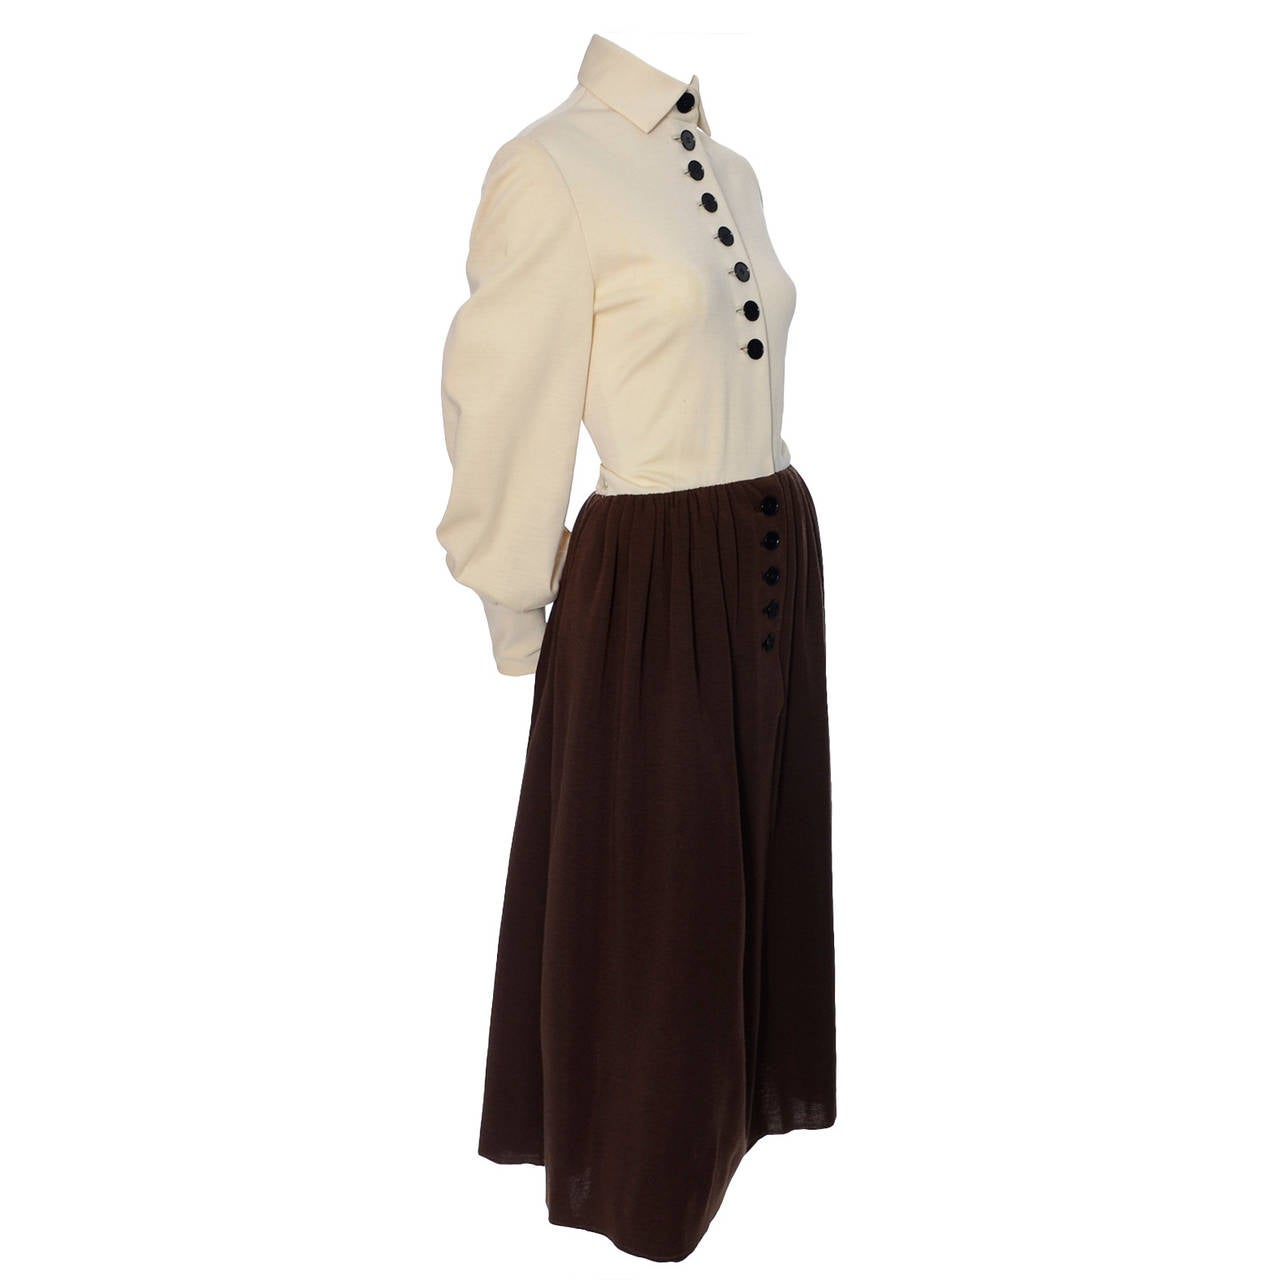 Norman Norell Att Vintage Dress Two Toned Brown Cream Wool